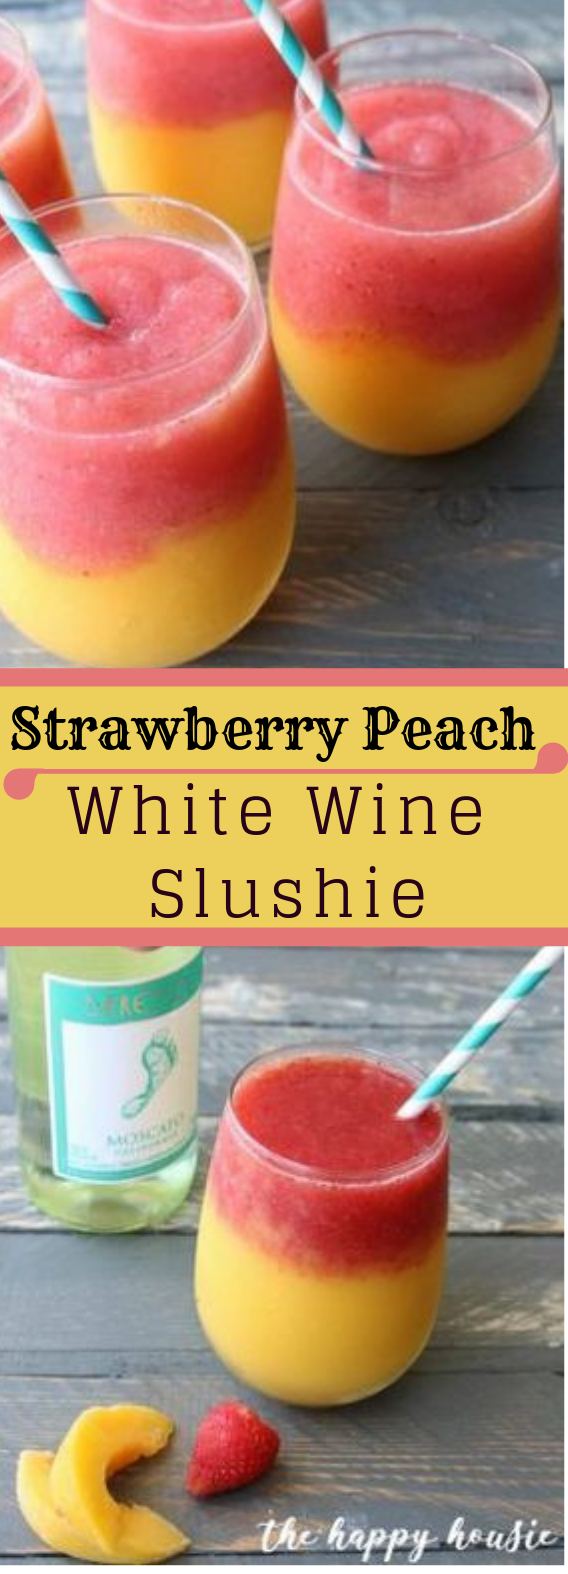 Strawberry Peach White Wine Slushie #strawberry #drink